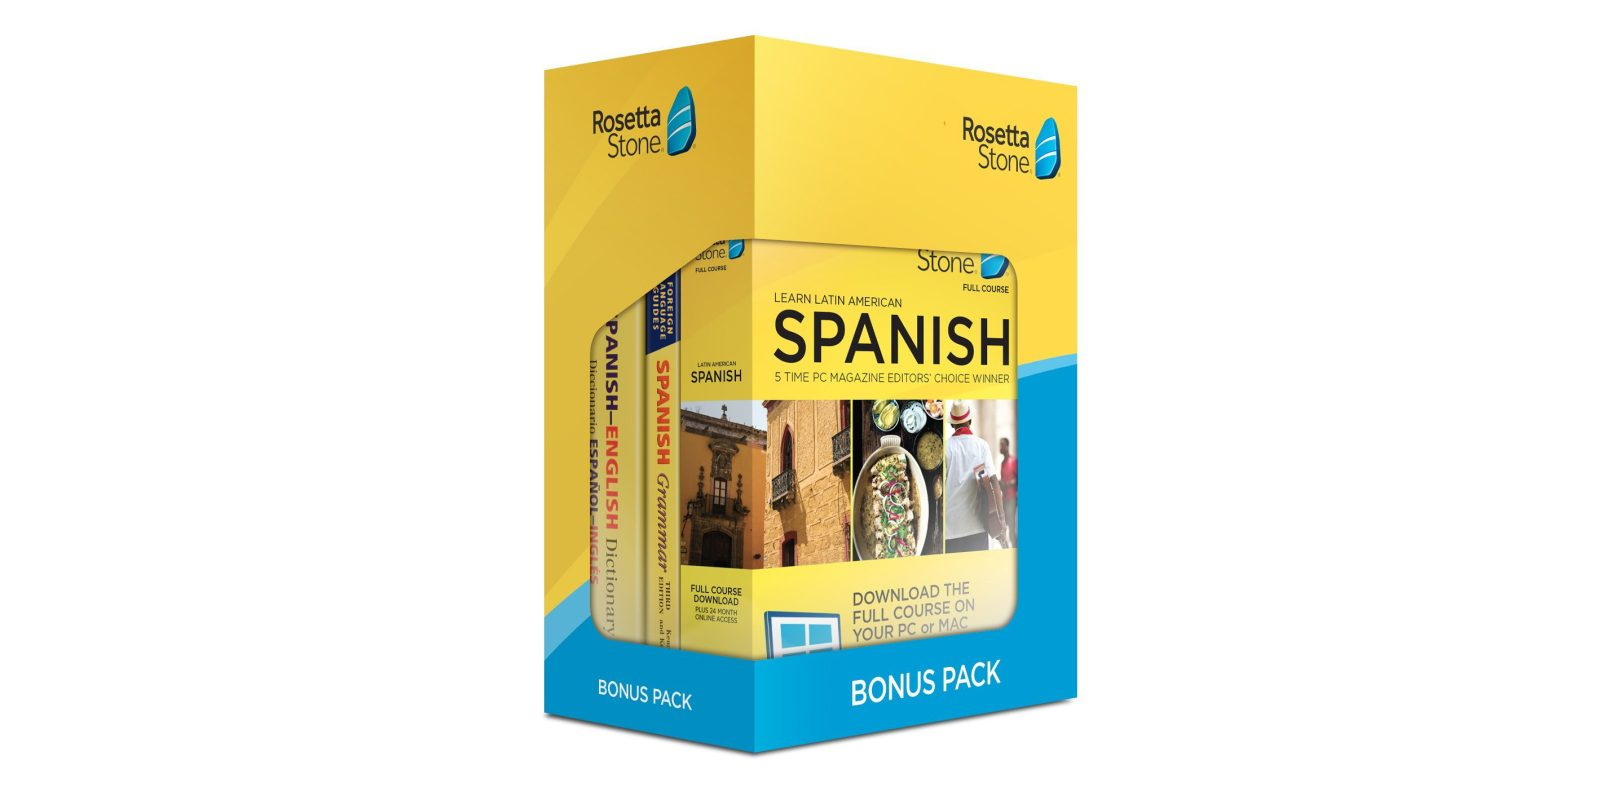 The award-winning Rosetta Stone language software can be